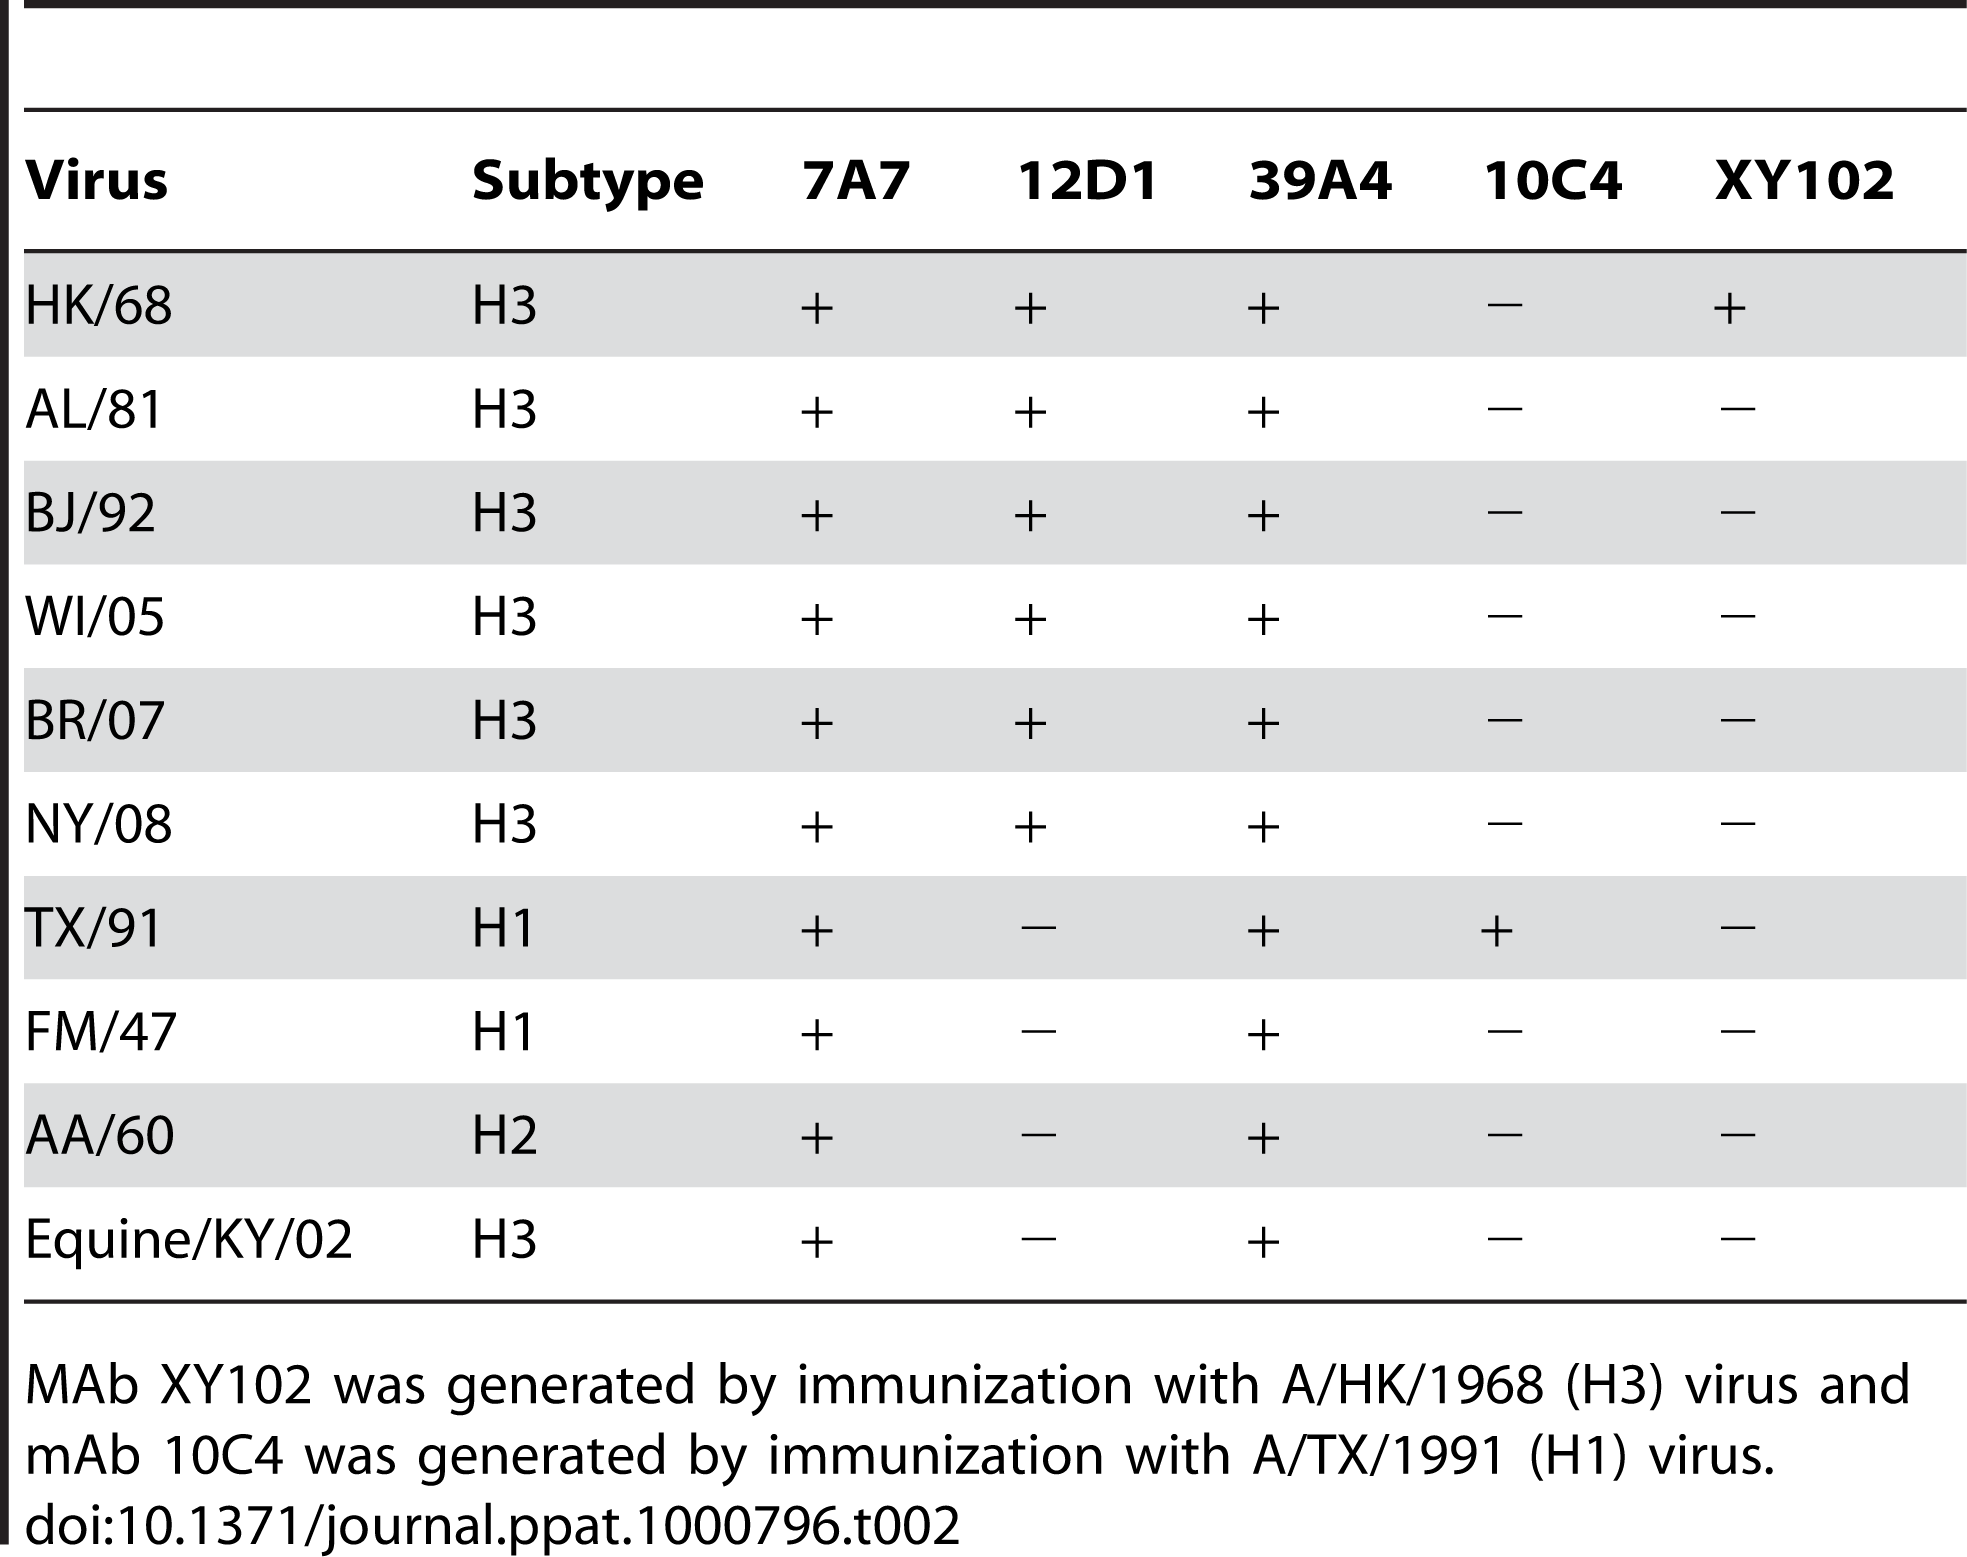 Reactivity of mAbs at 5ug/ml by immunofluorescence against MDCK cells infected with a panel of randomly chosen viruses.